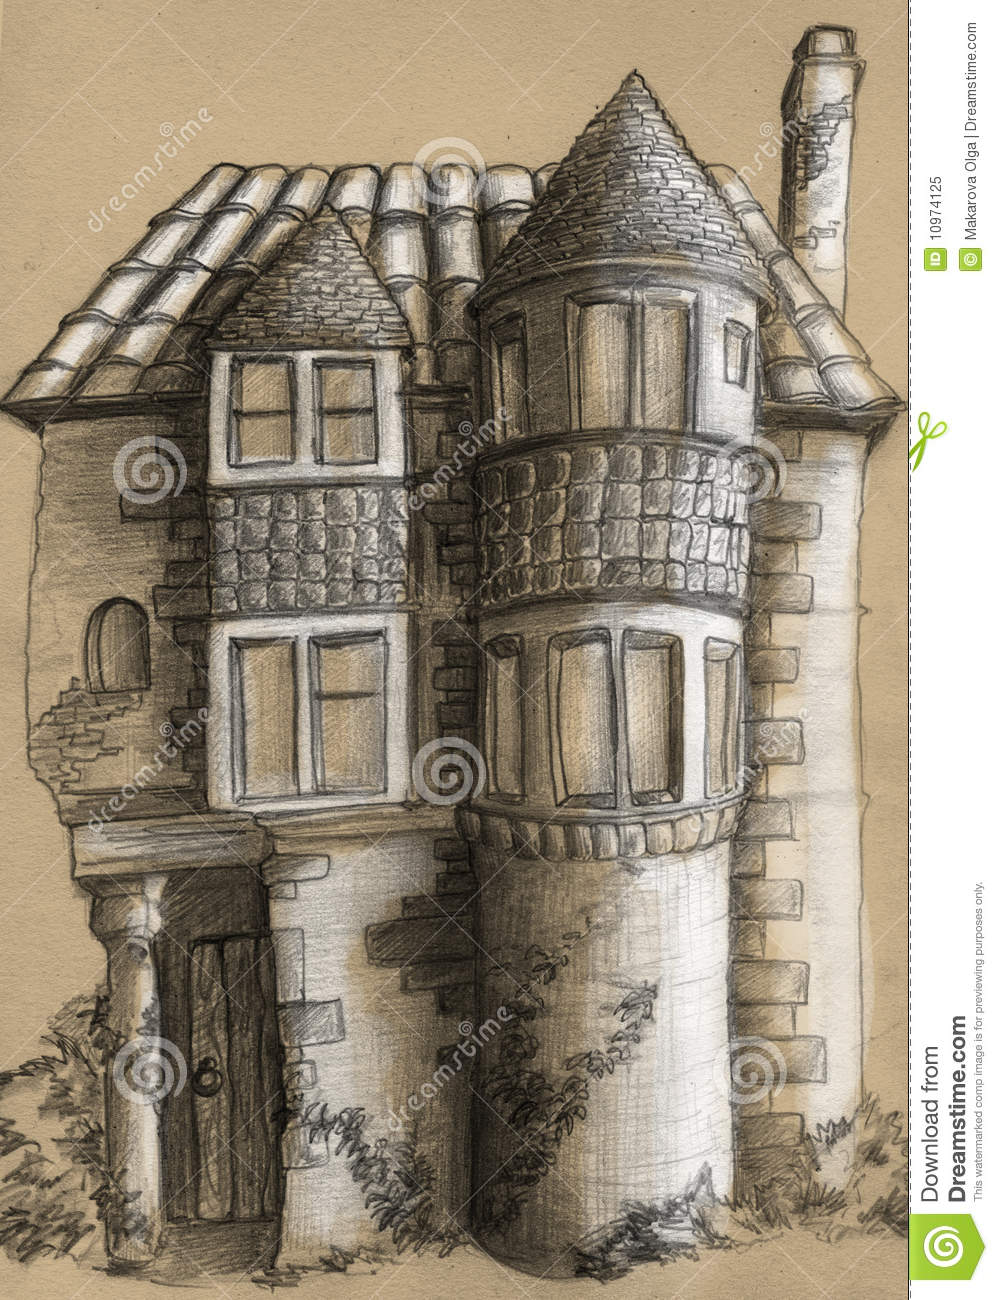 Mansion Drawing: Old House Sketch Royalty Free Stock Photo